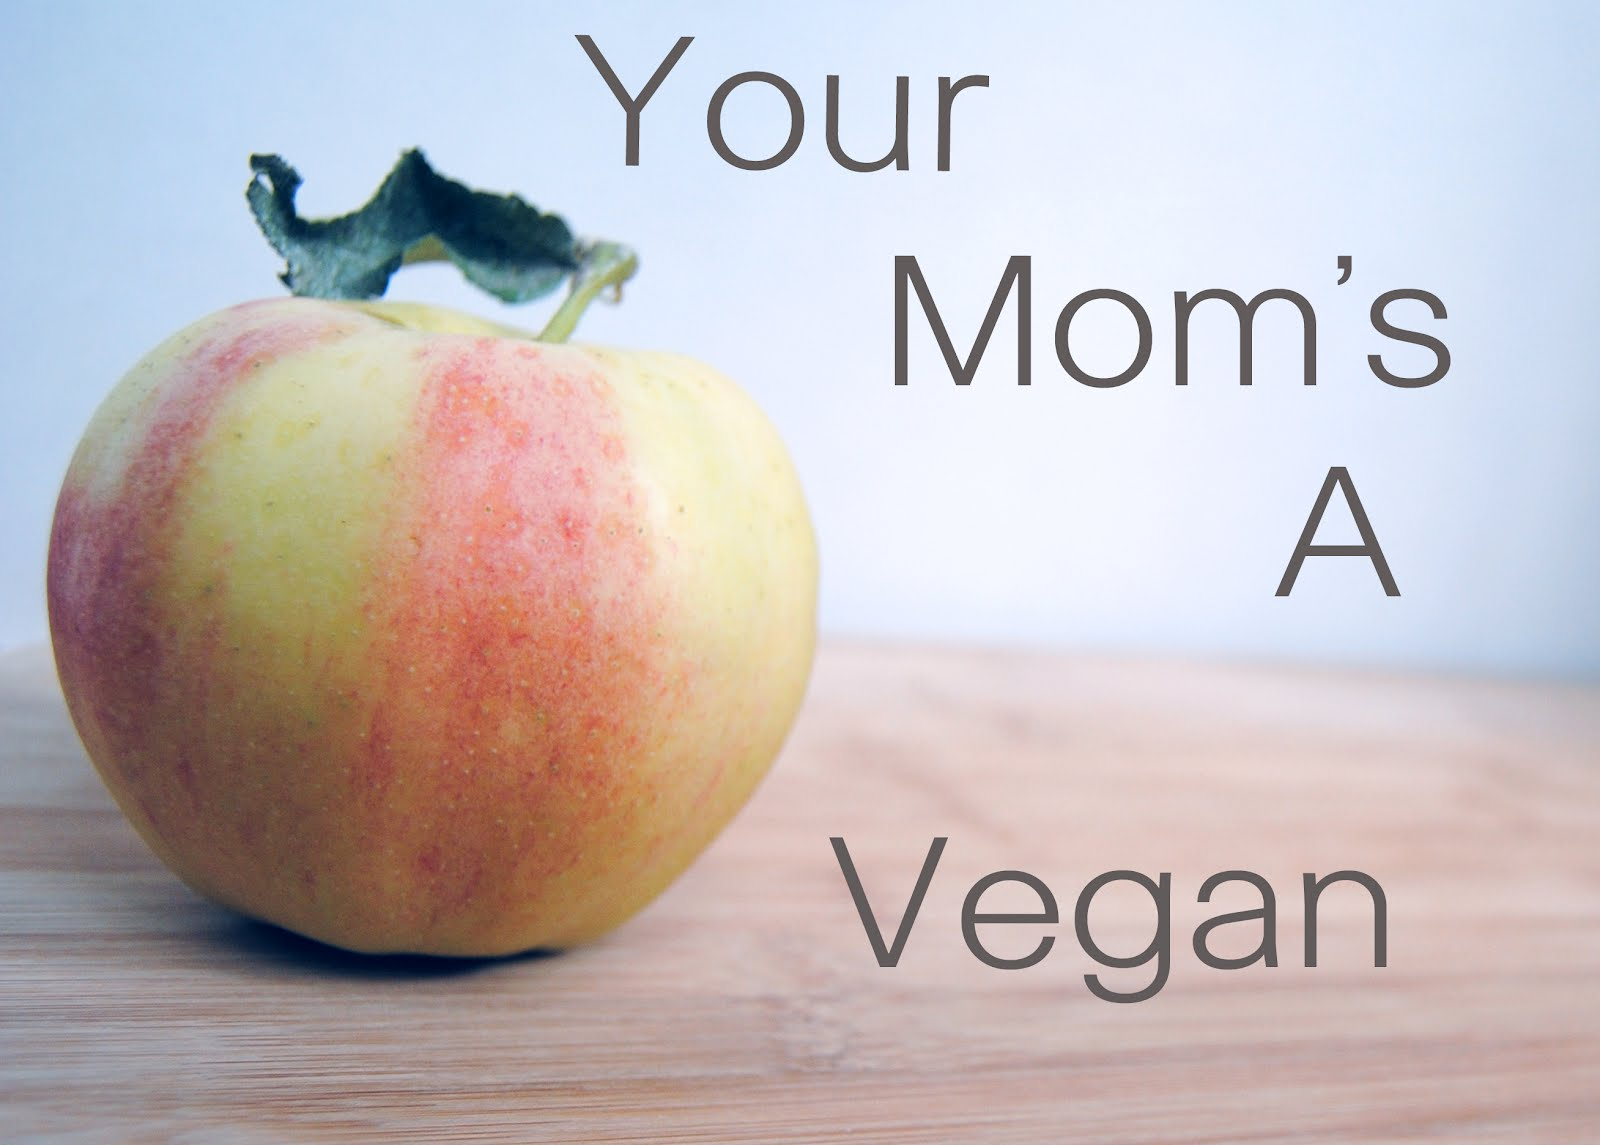 Your Mom's A Vegan